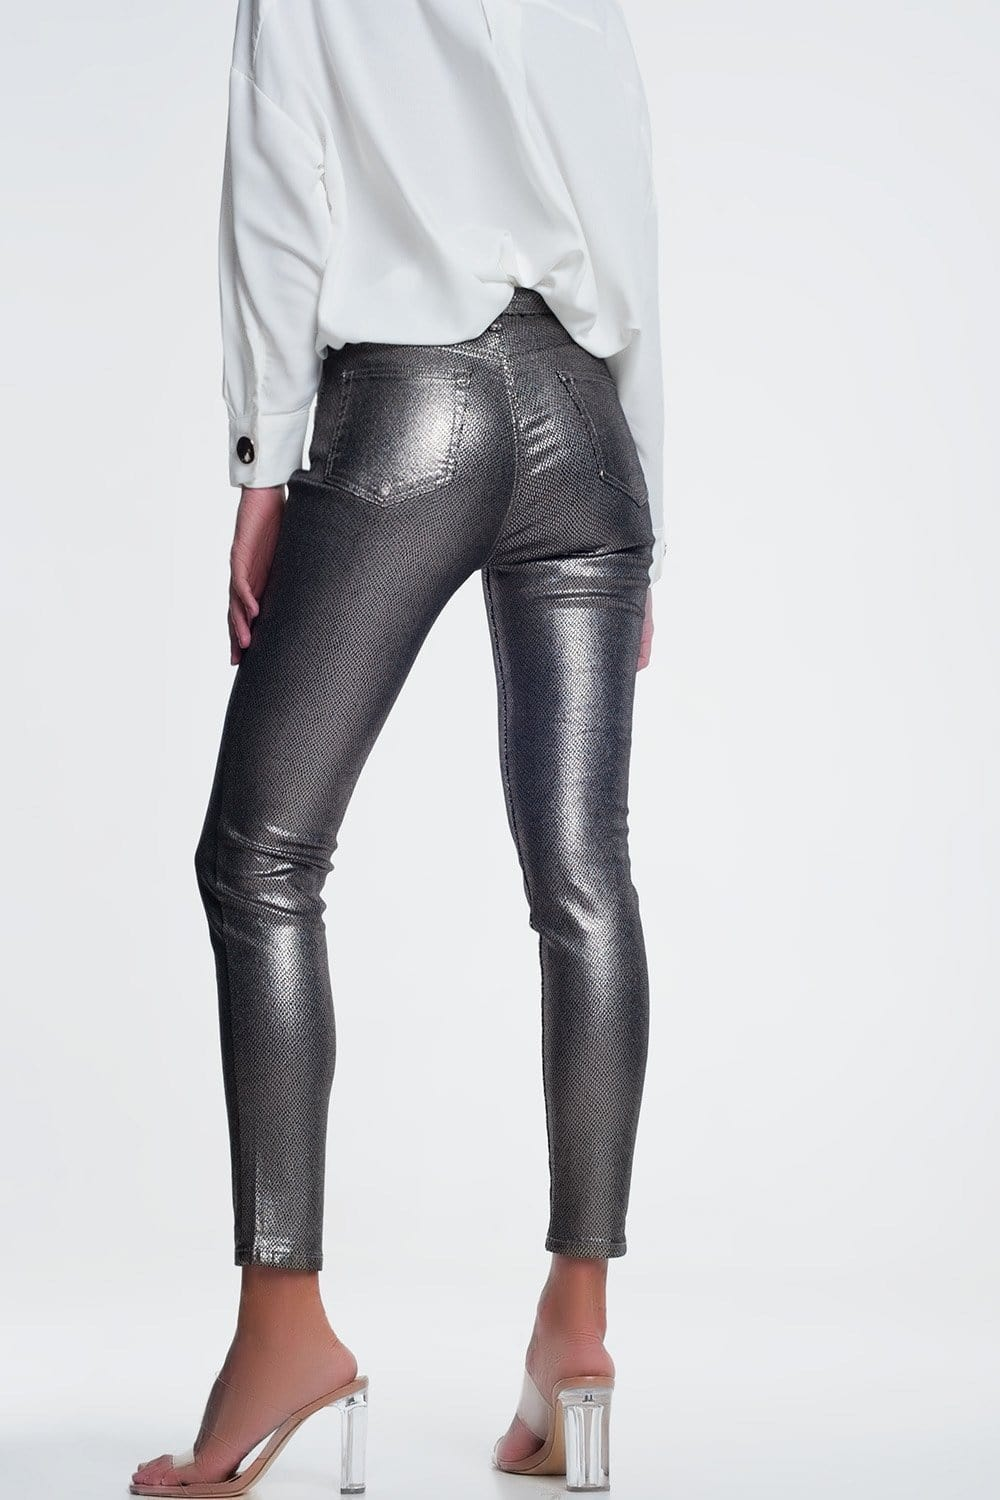 Silver Trousers with Snake Print - Himelhoch's